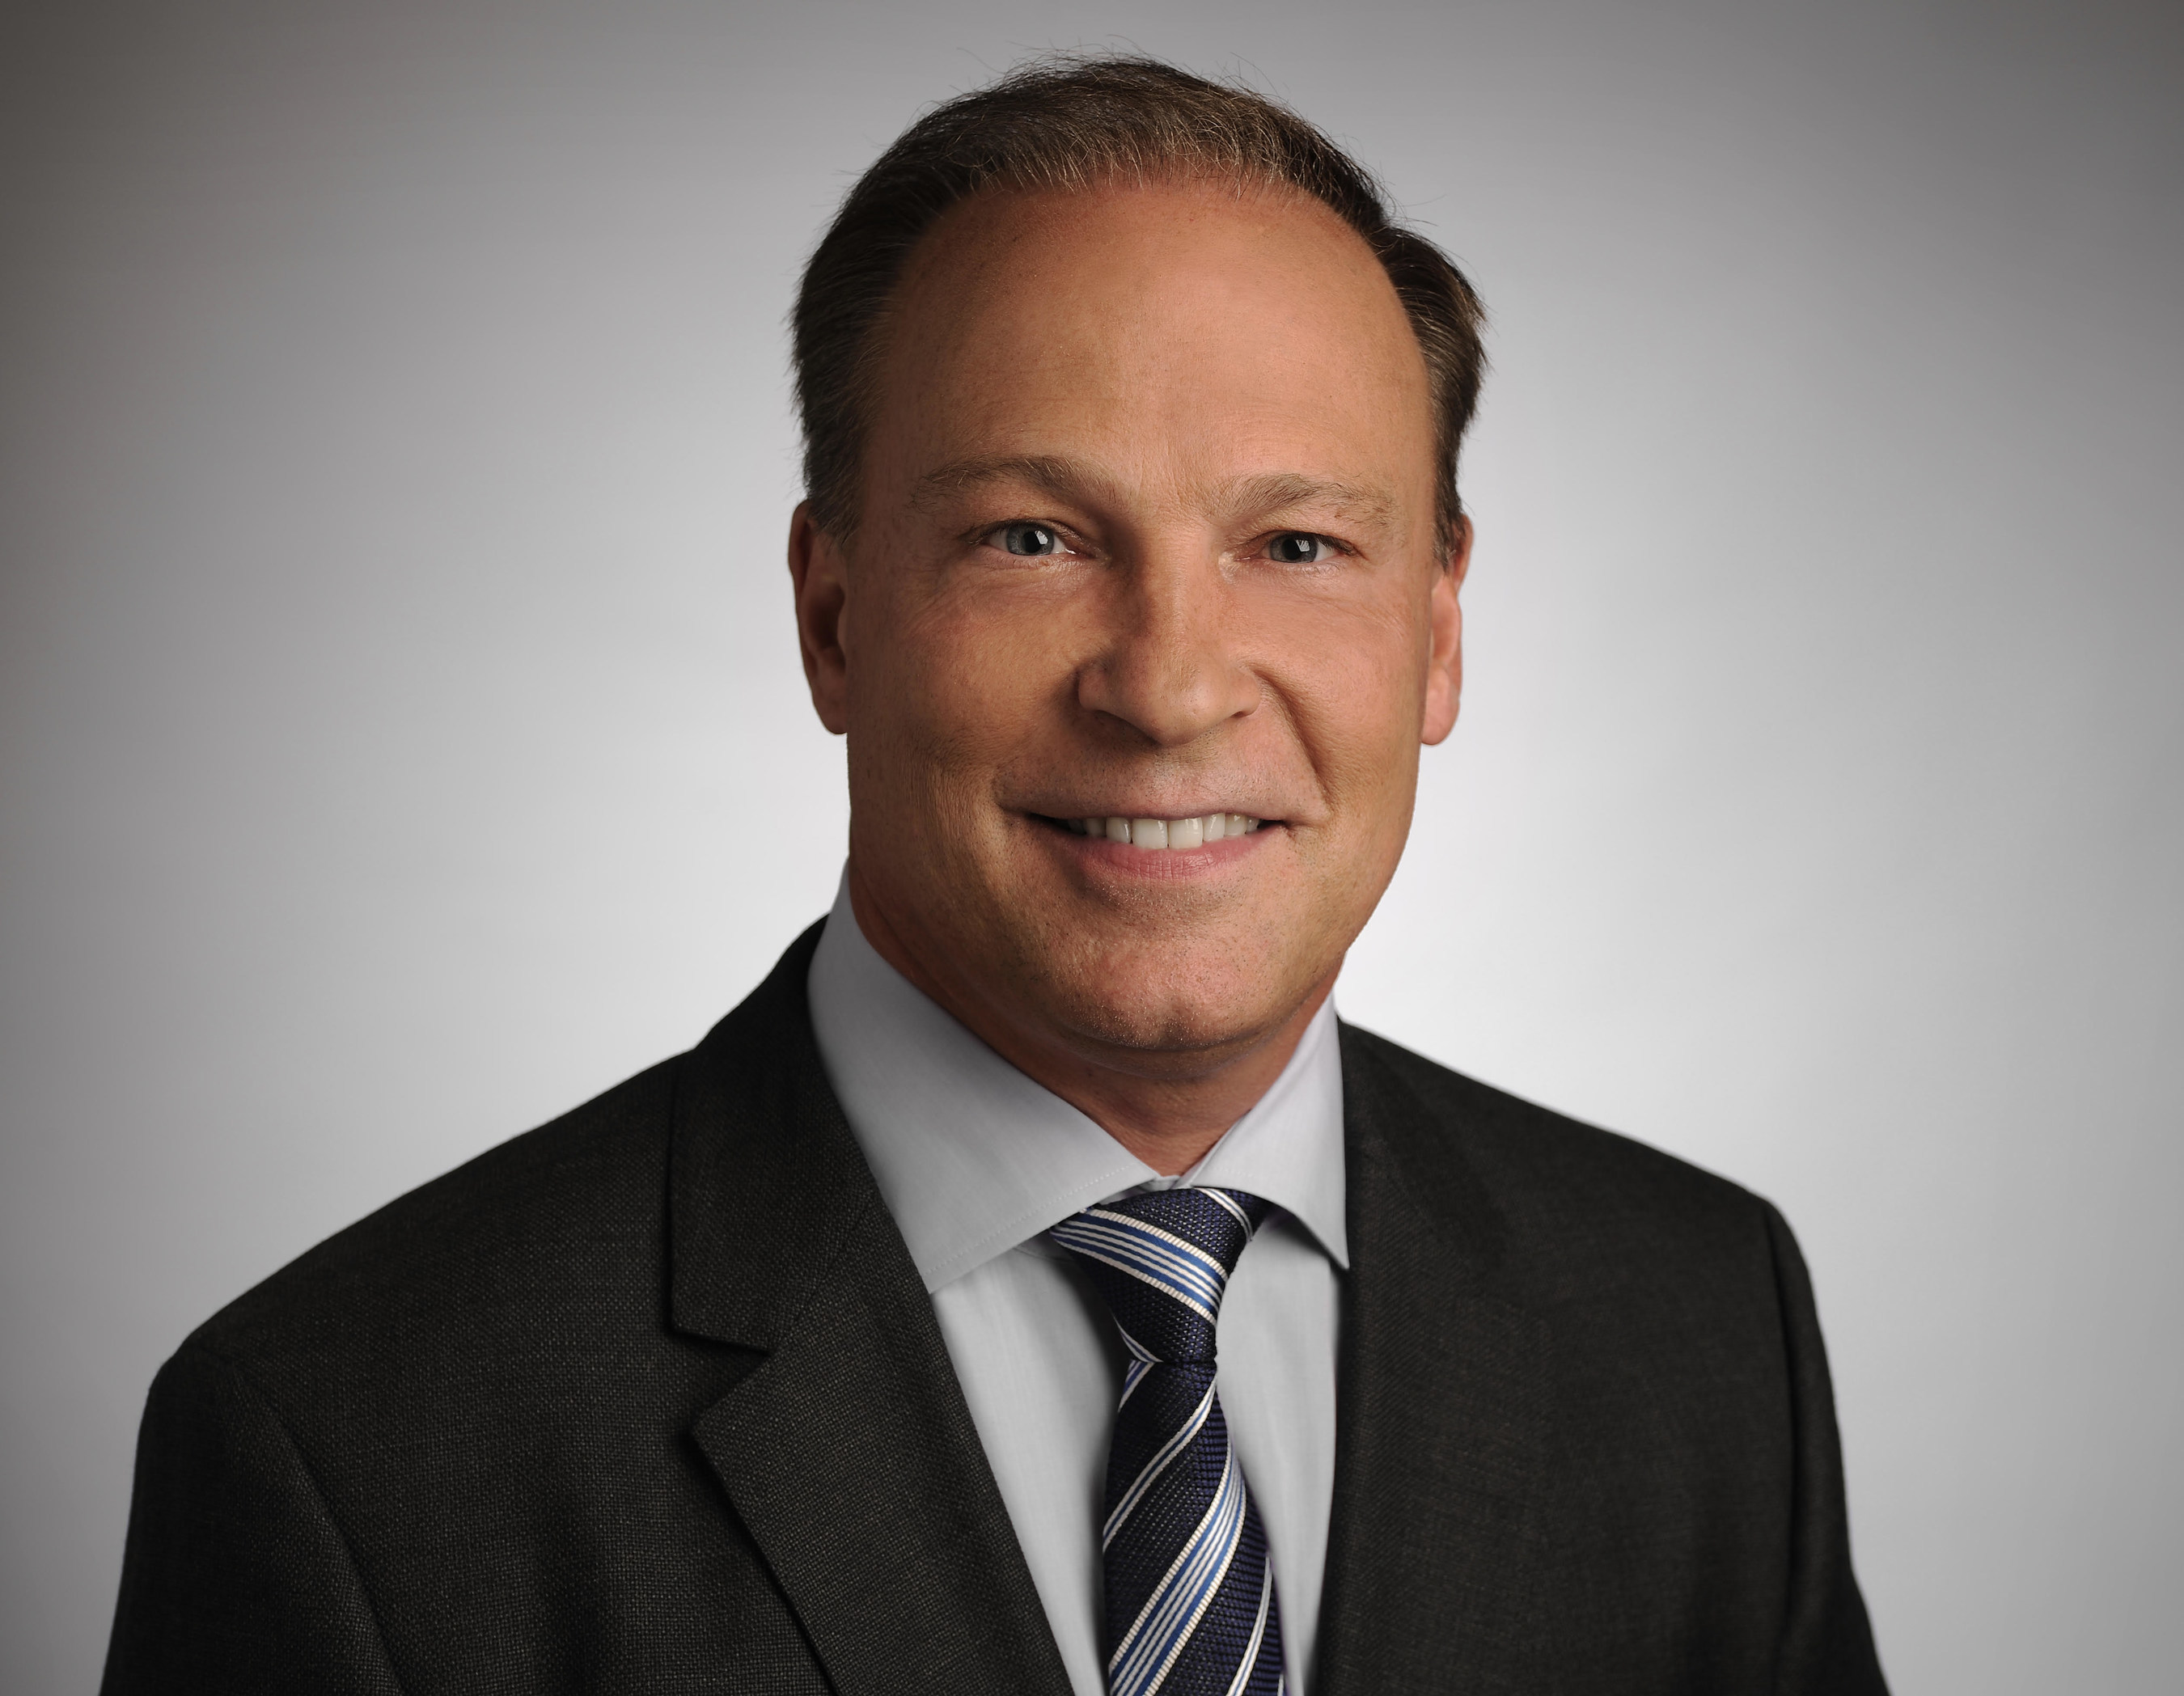 Industry veteran Rick Mahoney joins ANSYS as its new vice president of worldwide sales and customer excellence